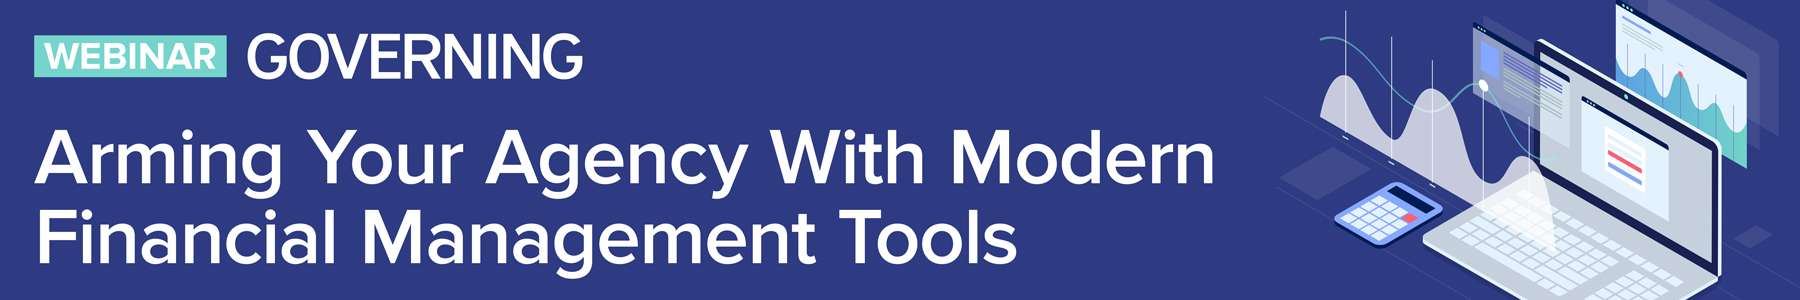 Arming Your Agency with Modern Financial Management Tools